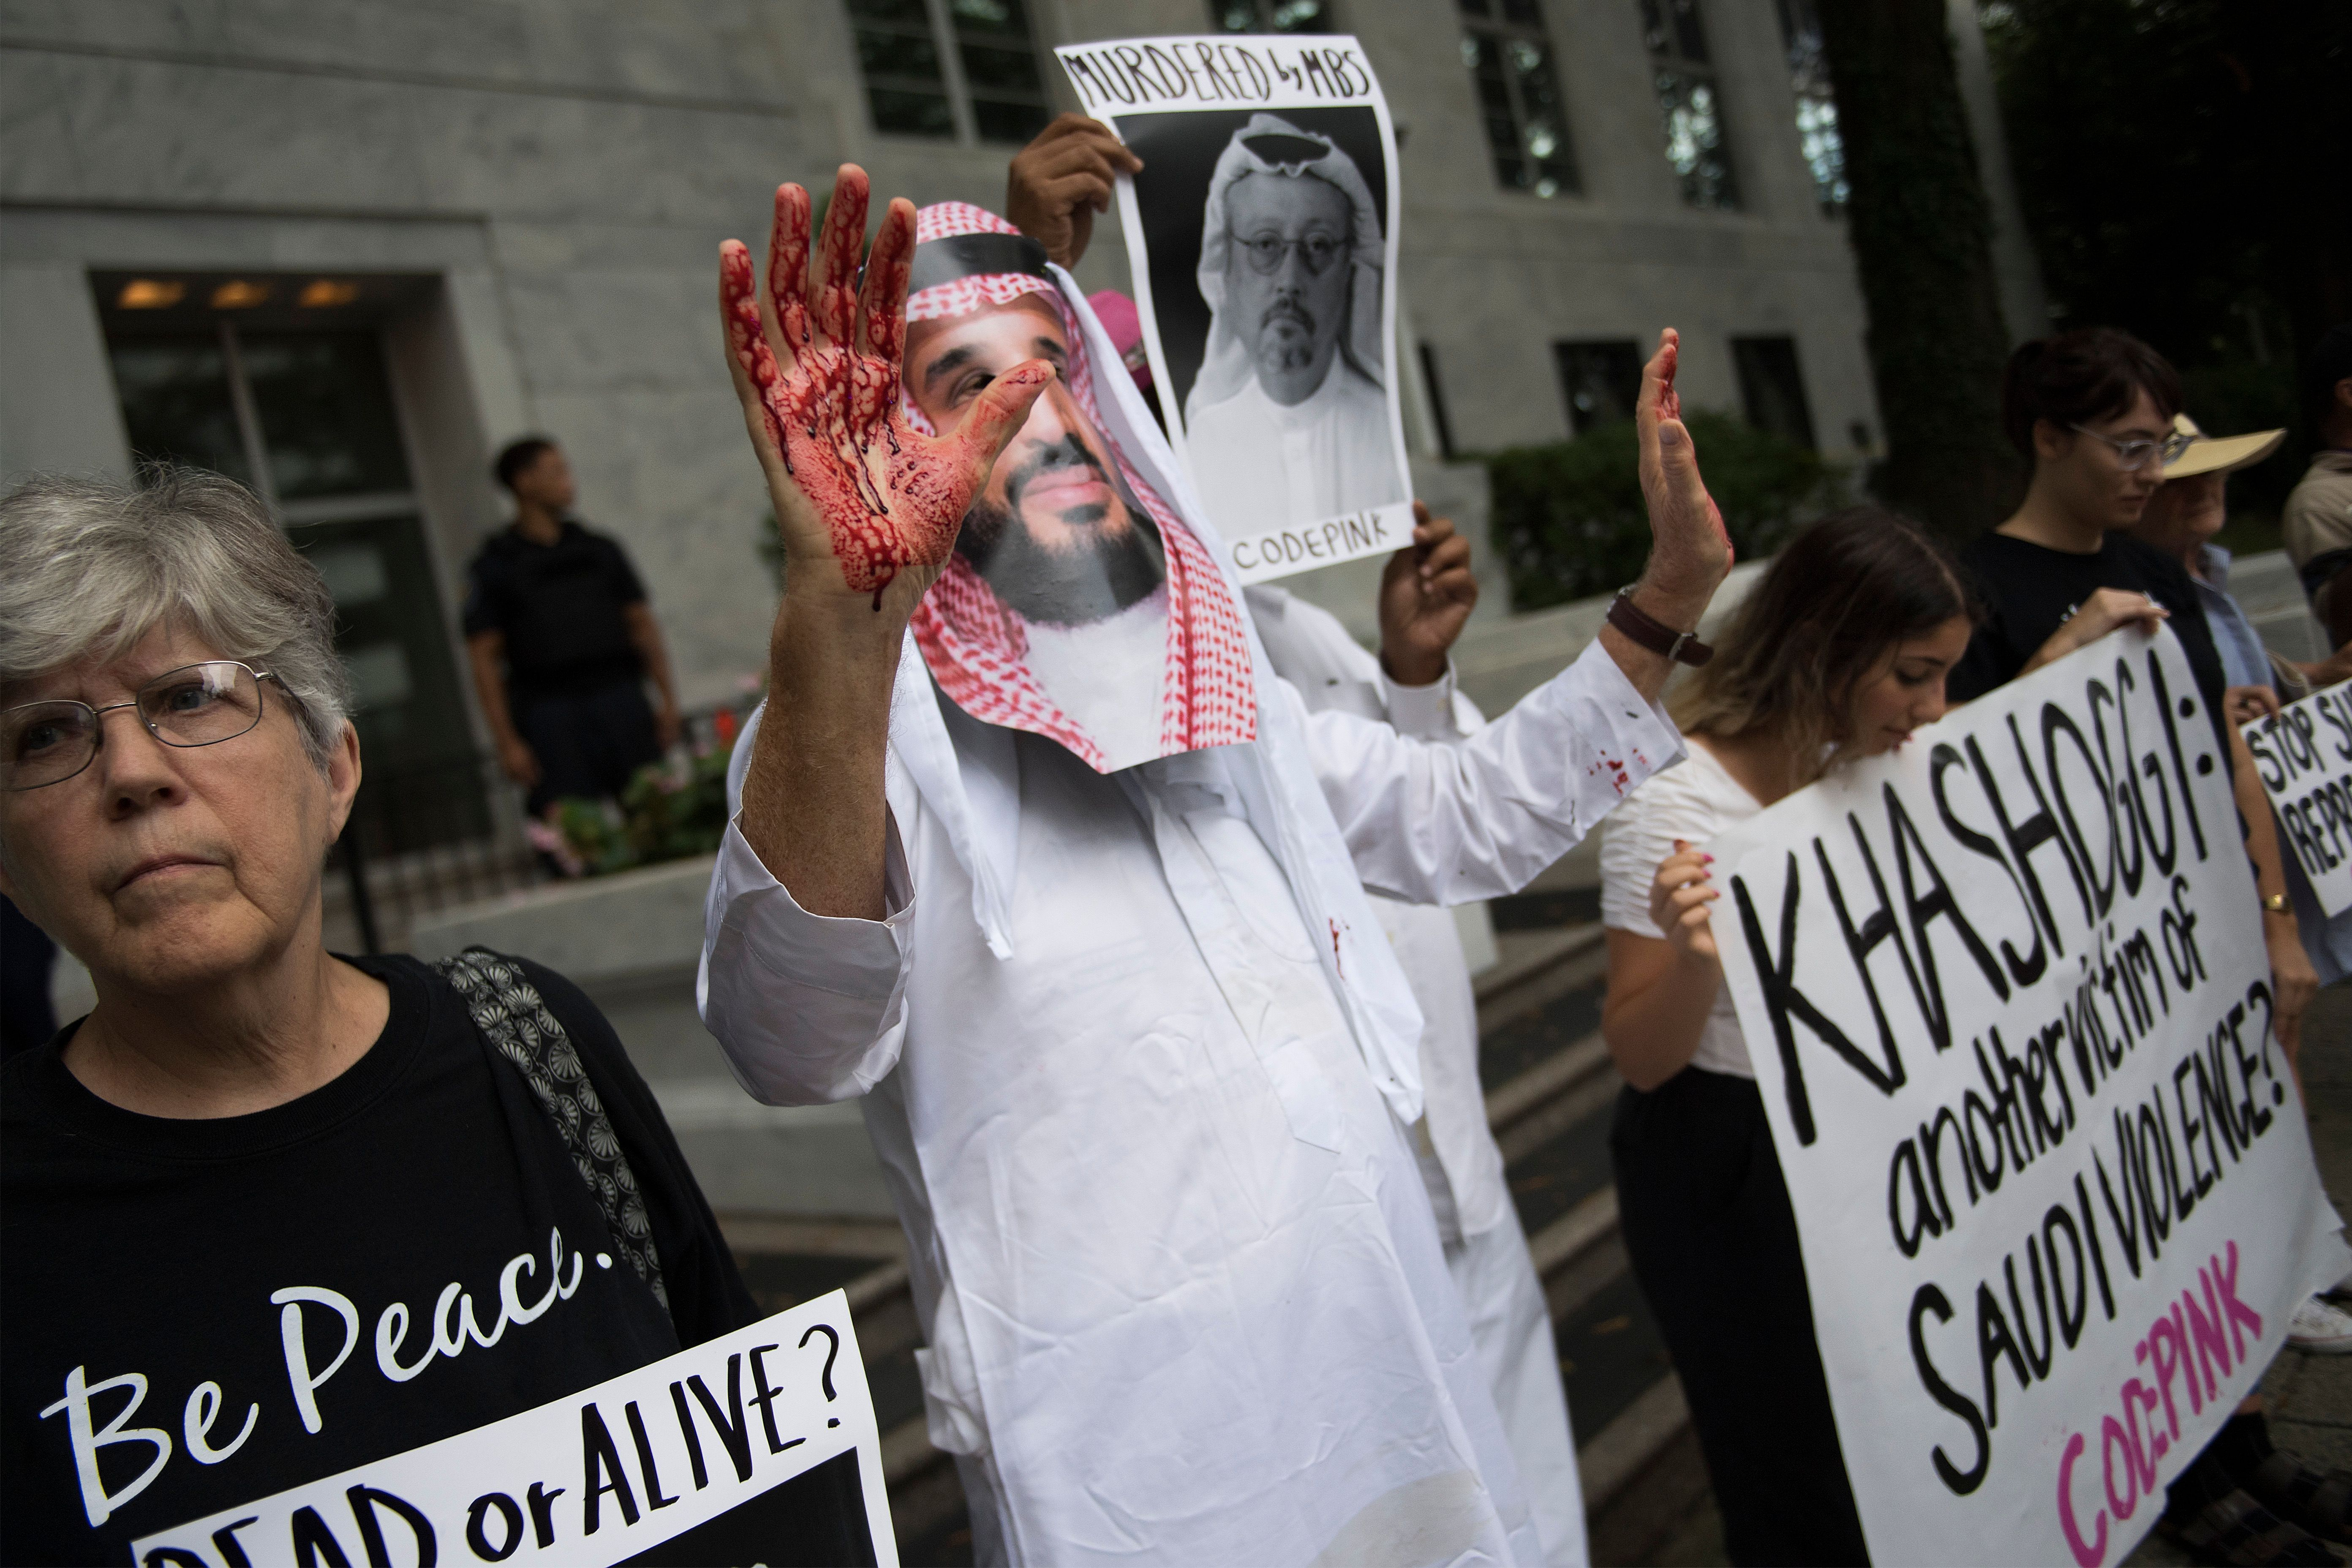 A demonstrator dressed as Saudi Arabian Crown Prince Mohammed bin Salman (C) with blood on his hands protests outside the Saudi Embassy in Washington, DC, on October 8, 2018, demanding justice for journalist Jamal Khashoggi. (JIM WATSON/AFP via Getty Images)